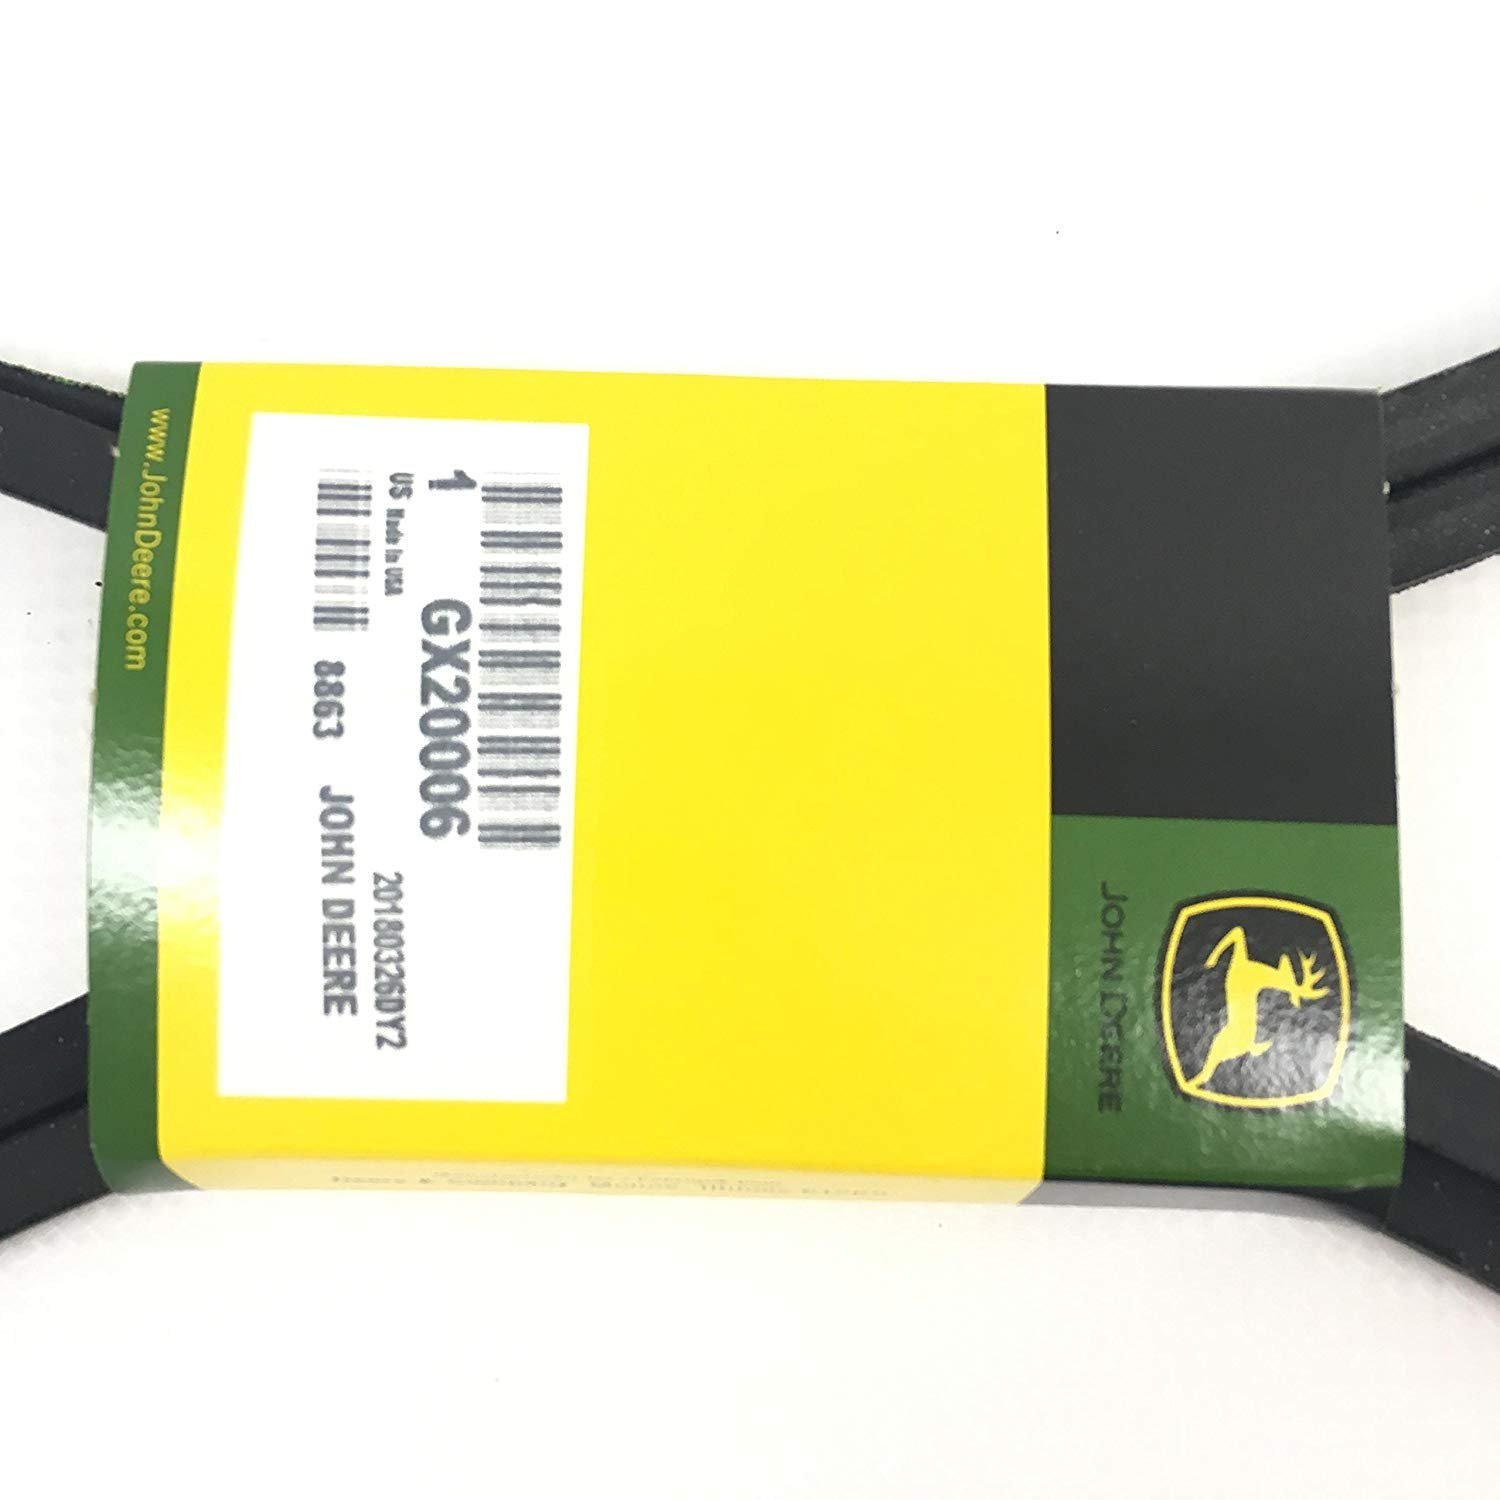 Amazon.com : John Deere GX20006 Lawn Tractor Transmission Drive Belt Genuine Original Equipment Manufacturer (OEM) Part : Garden & Outdoor